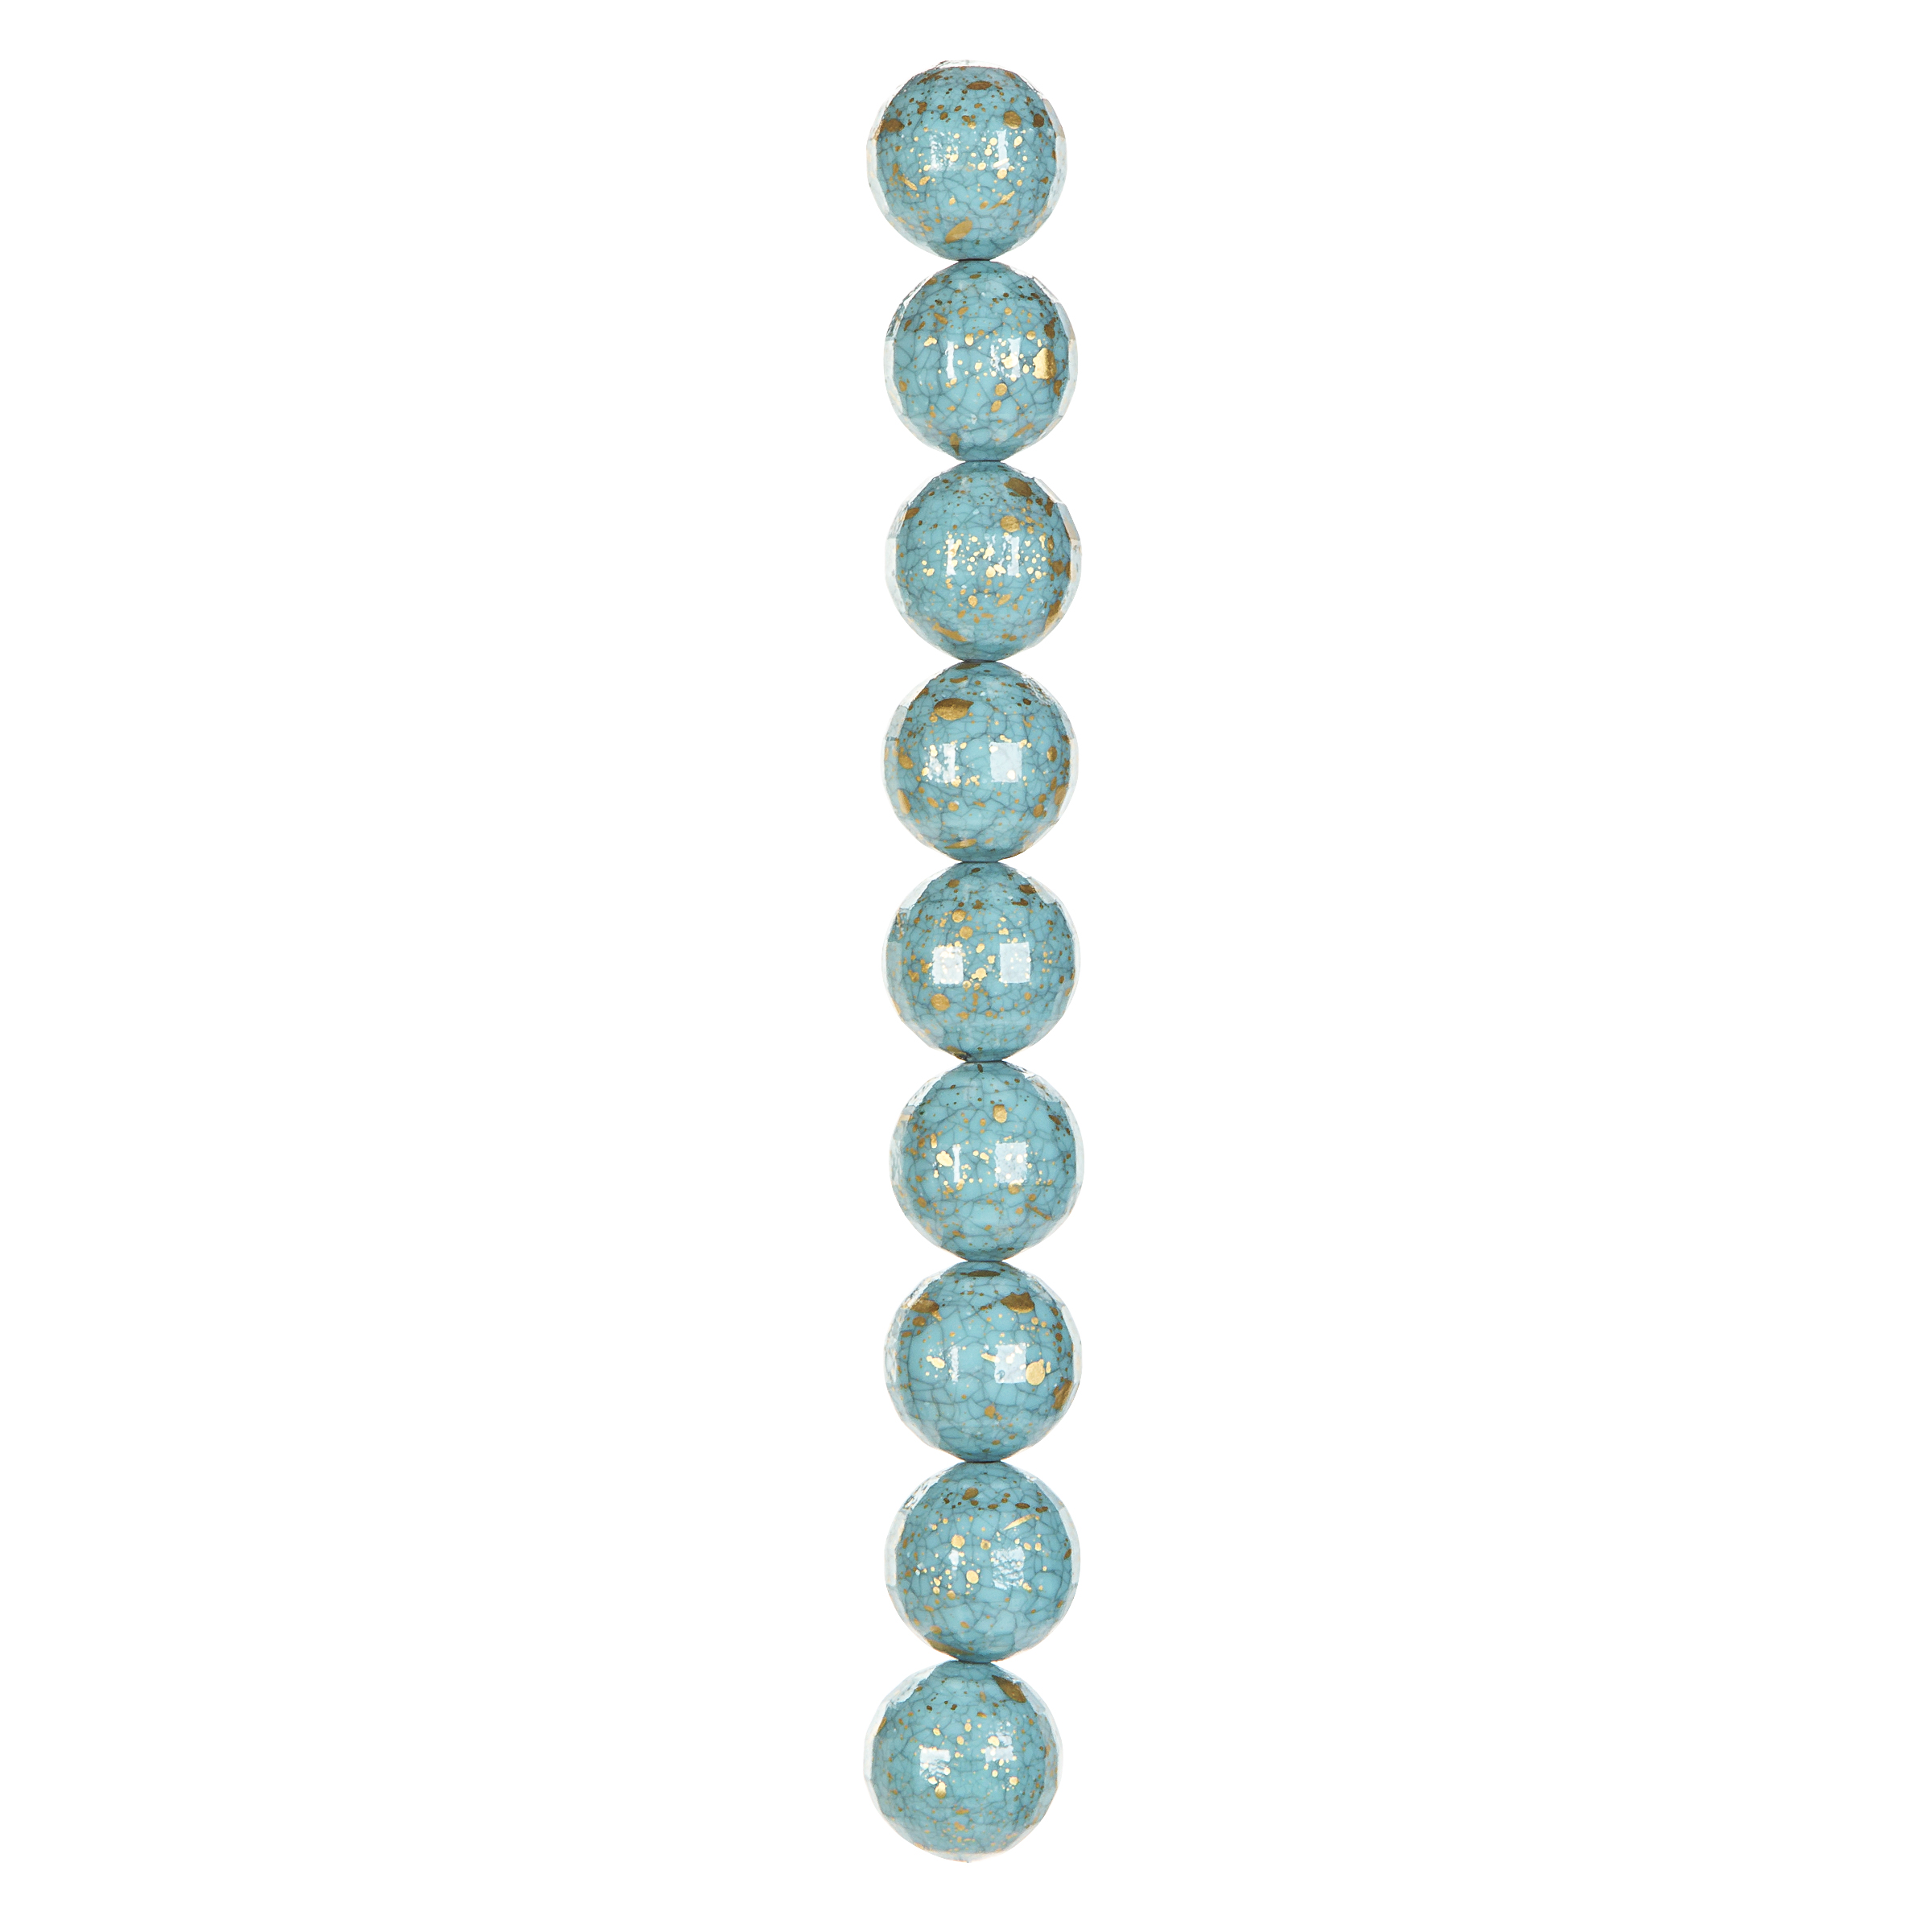 "7"" Strand Acrylic Faceted Round Beads, Turquoise, 20mm dia."